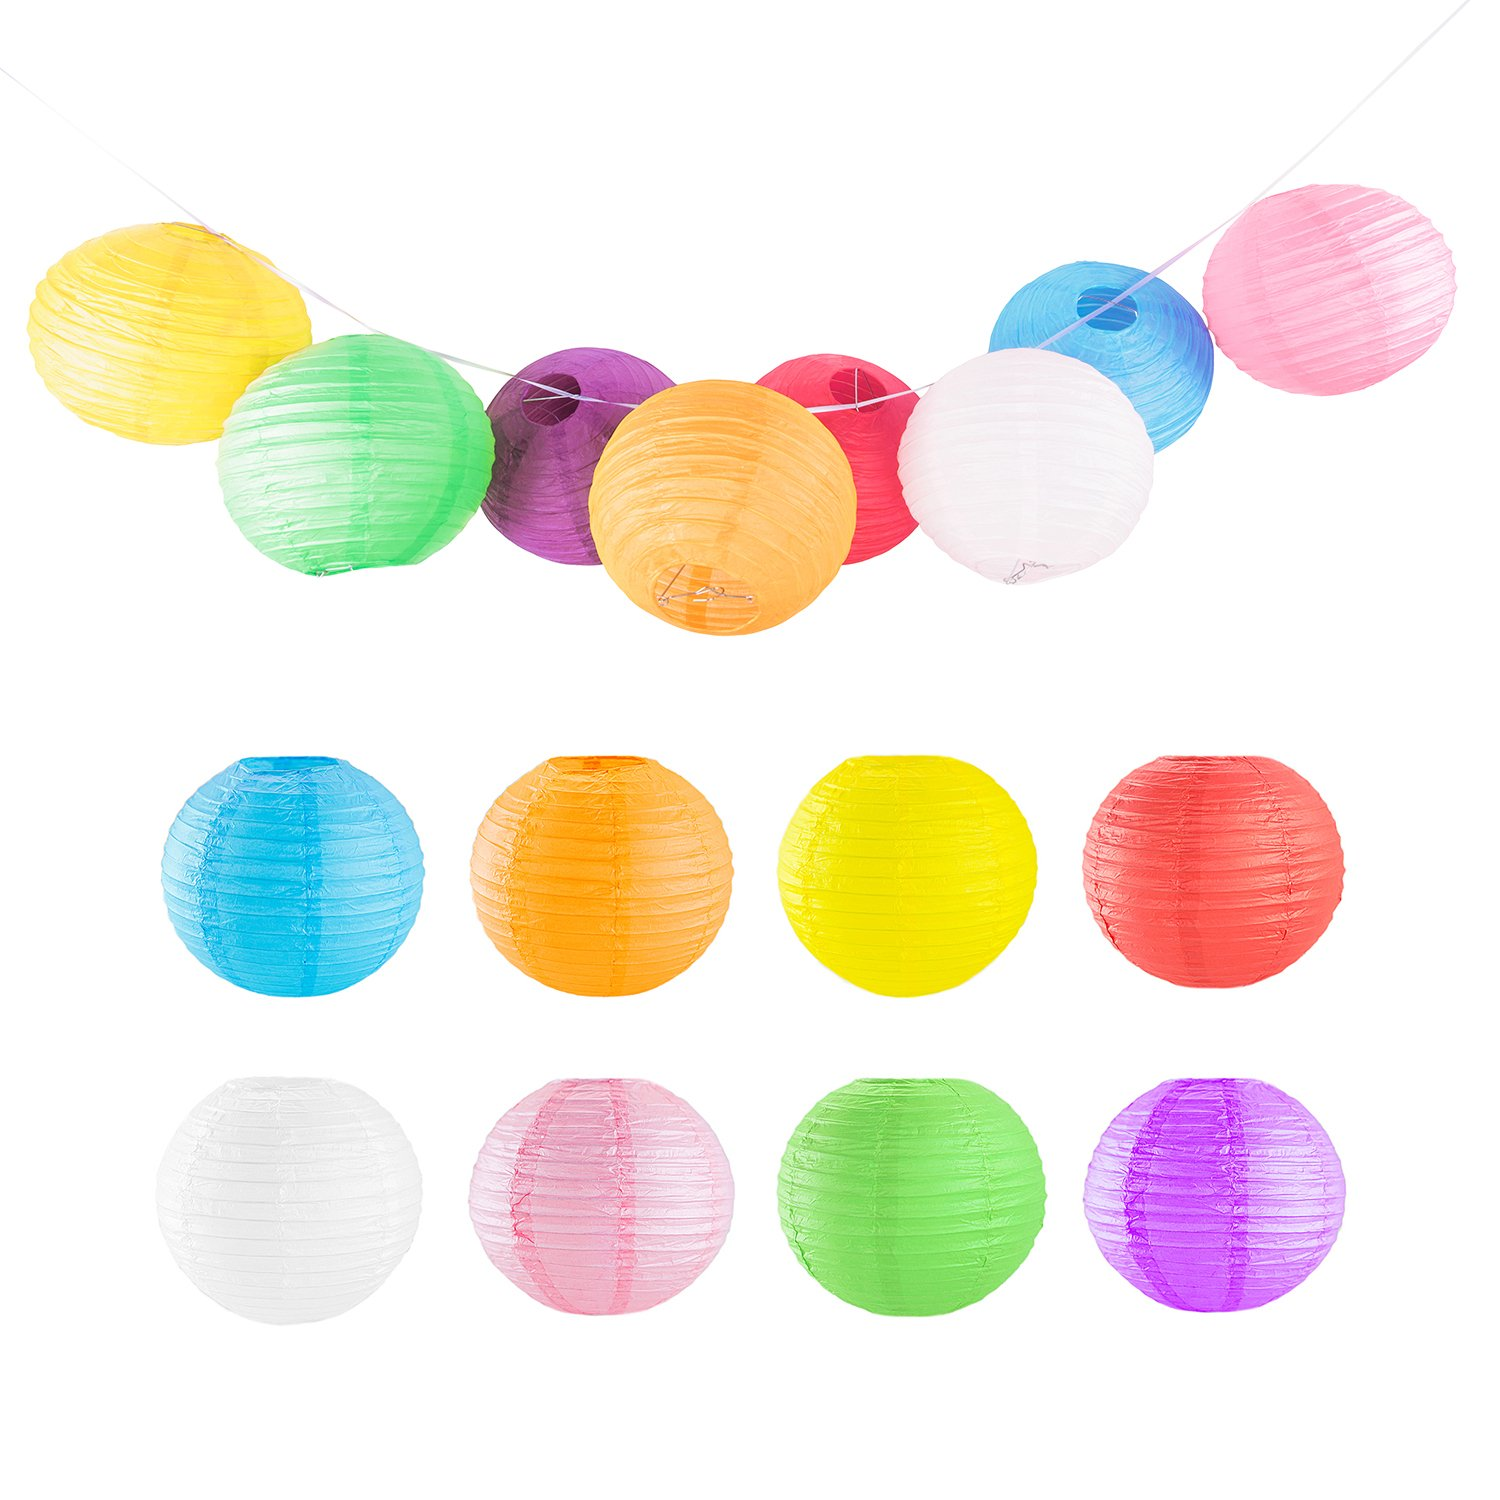 12'' Colorful Assorted Chinese/Japanese Hanging Paper Lanterns Metal Frame for Party, Home Lamps, Event Decoration (8 Pack)